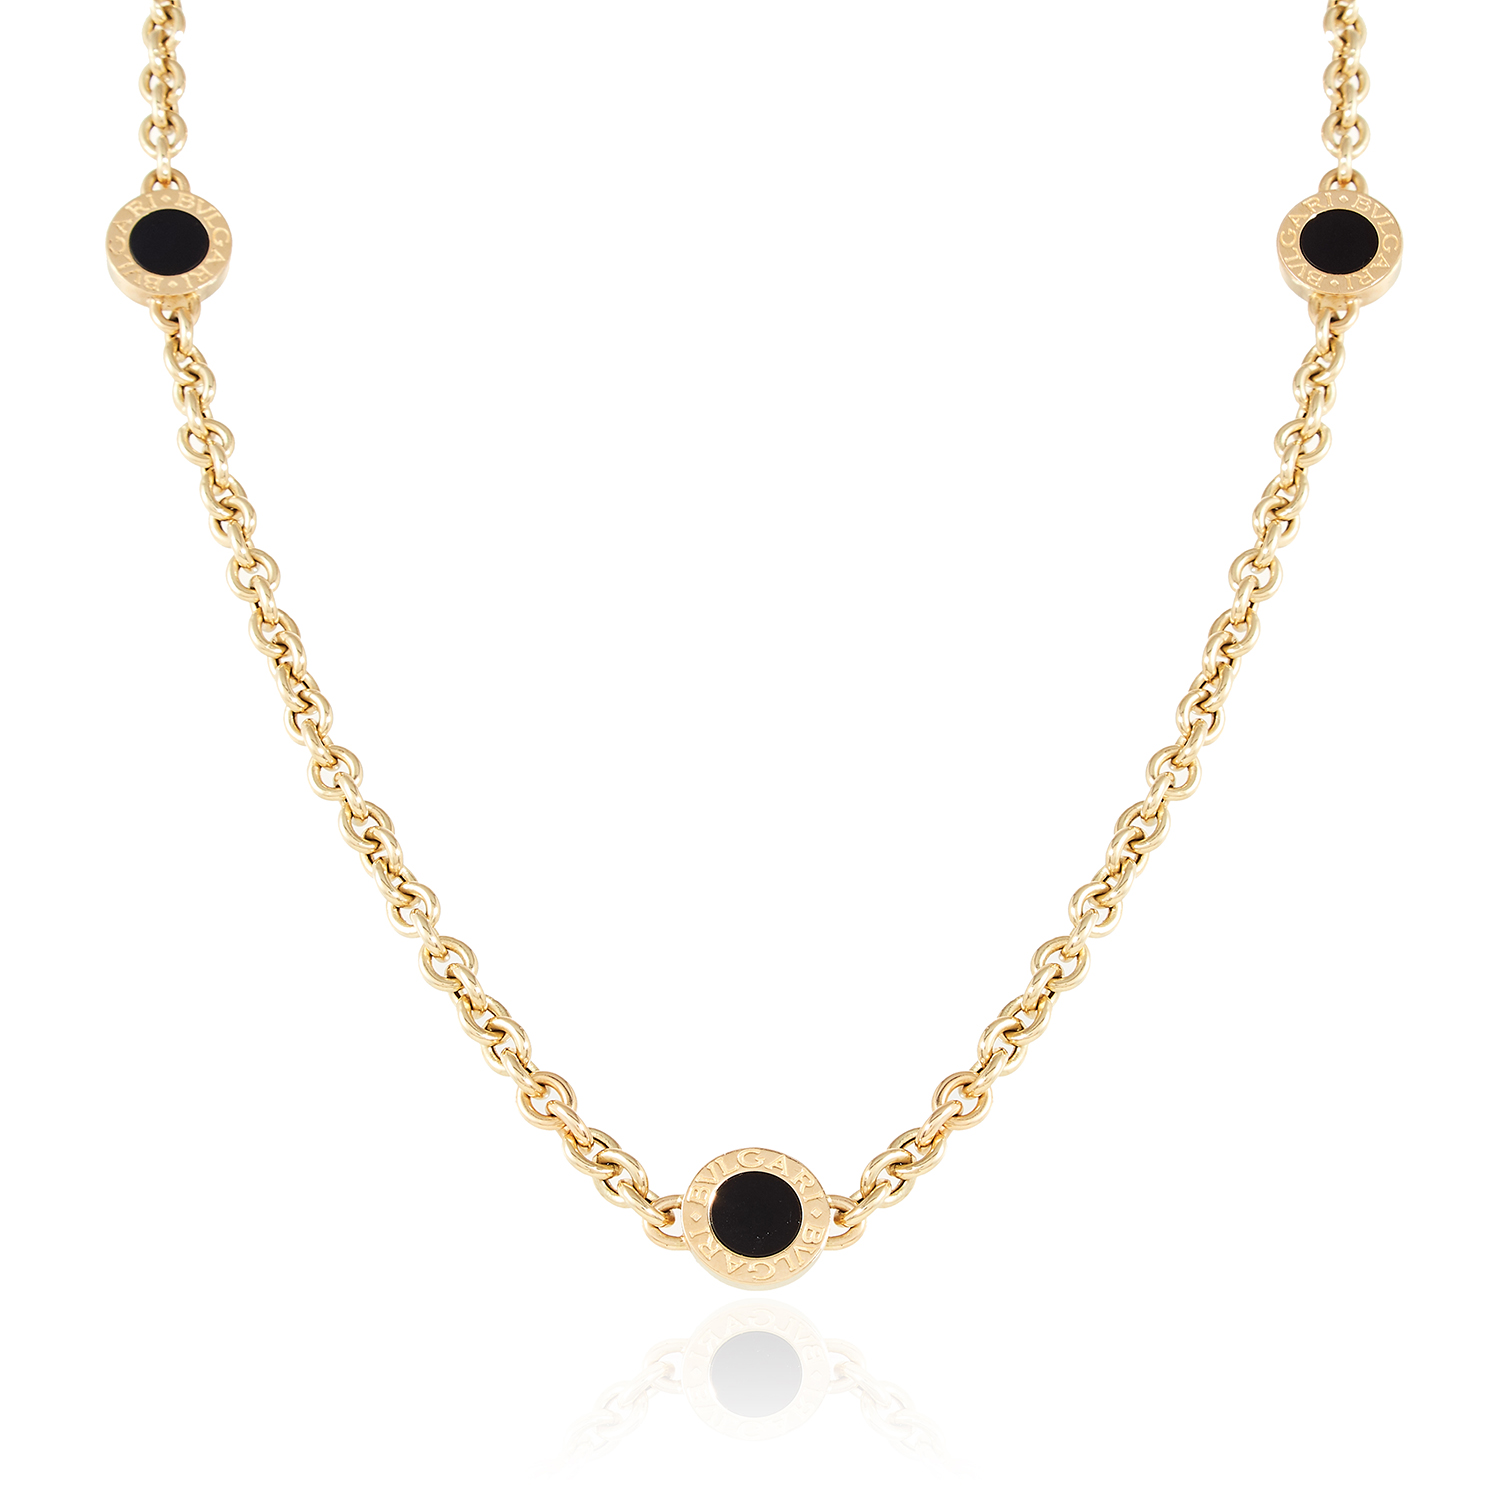 Los 18 - AN ONYX LINK NECKLACE, BULGARI in 18ct yellow gold, comprising of six onyx Bvlgari links signed